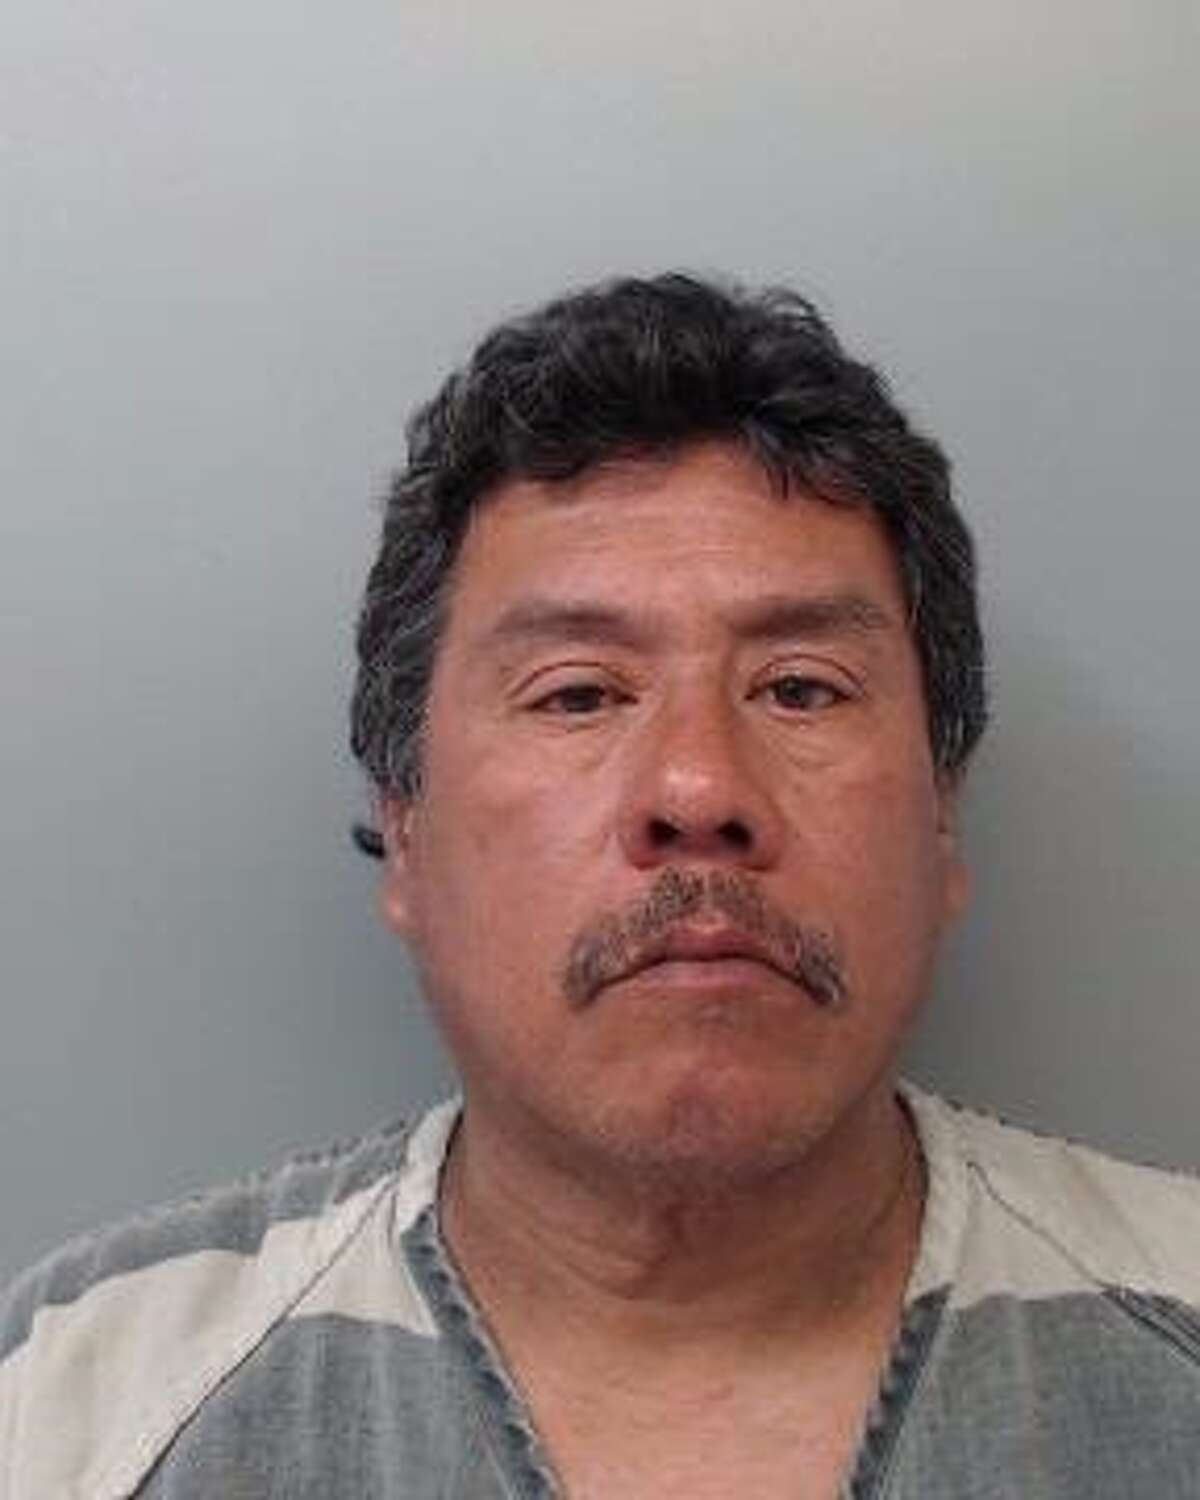 Rene Alvarado, 54, was arrested and charged with assault, family violence.